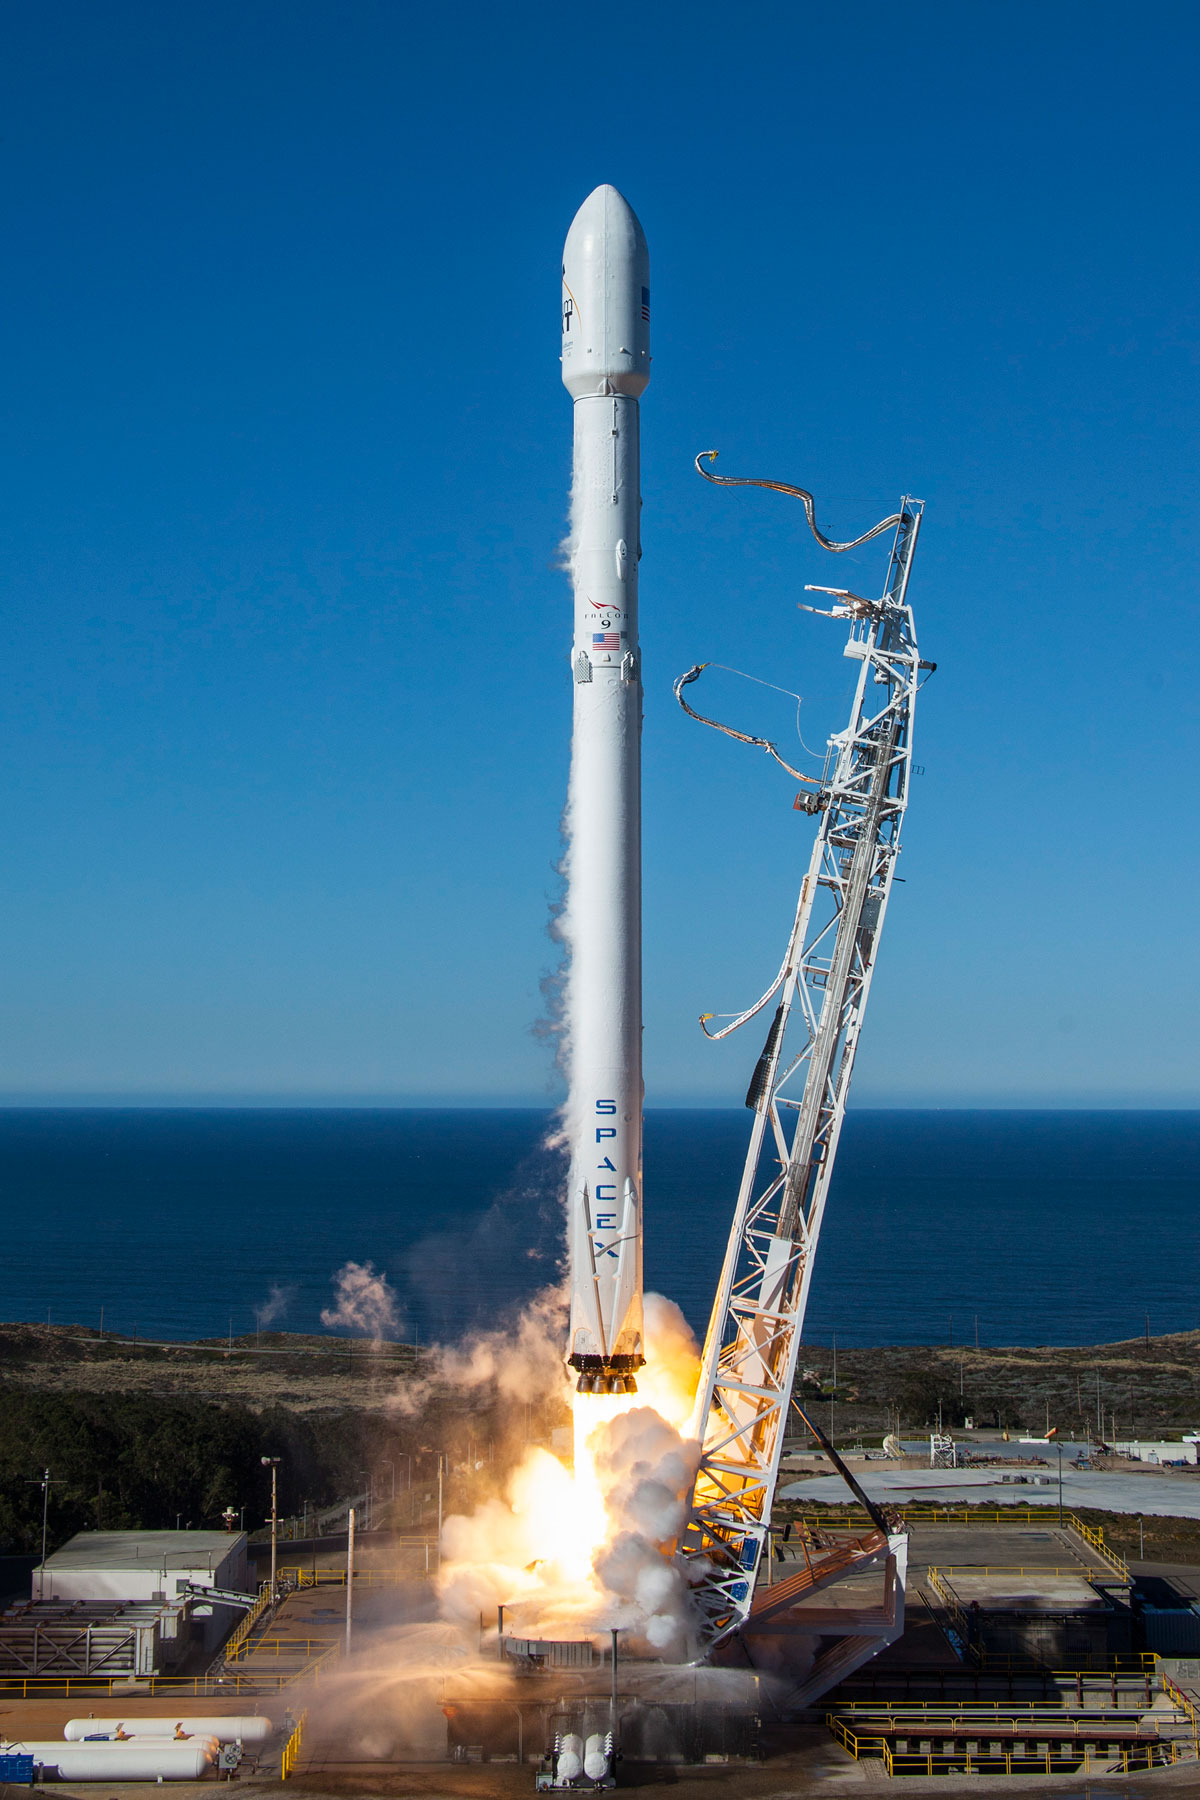 spacex launch and land january 2017 9 14 Amazing HQ Photos from SpaceXs Successful Launch and Landing